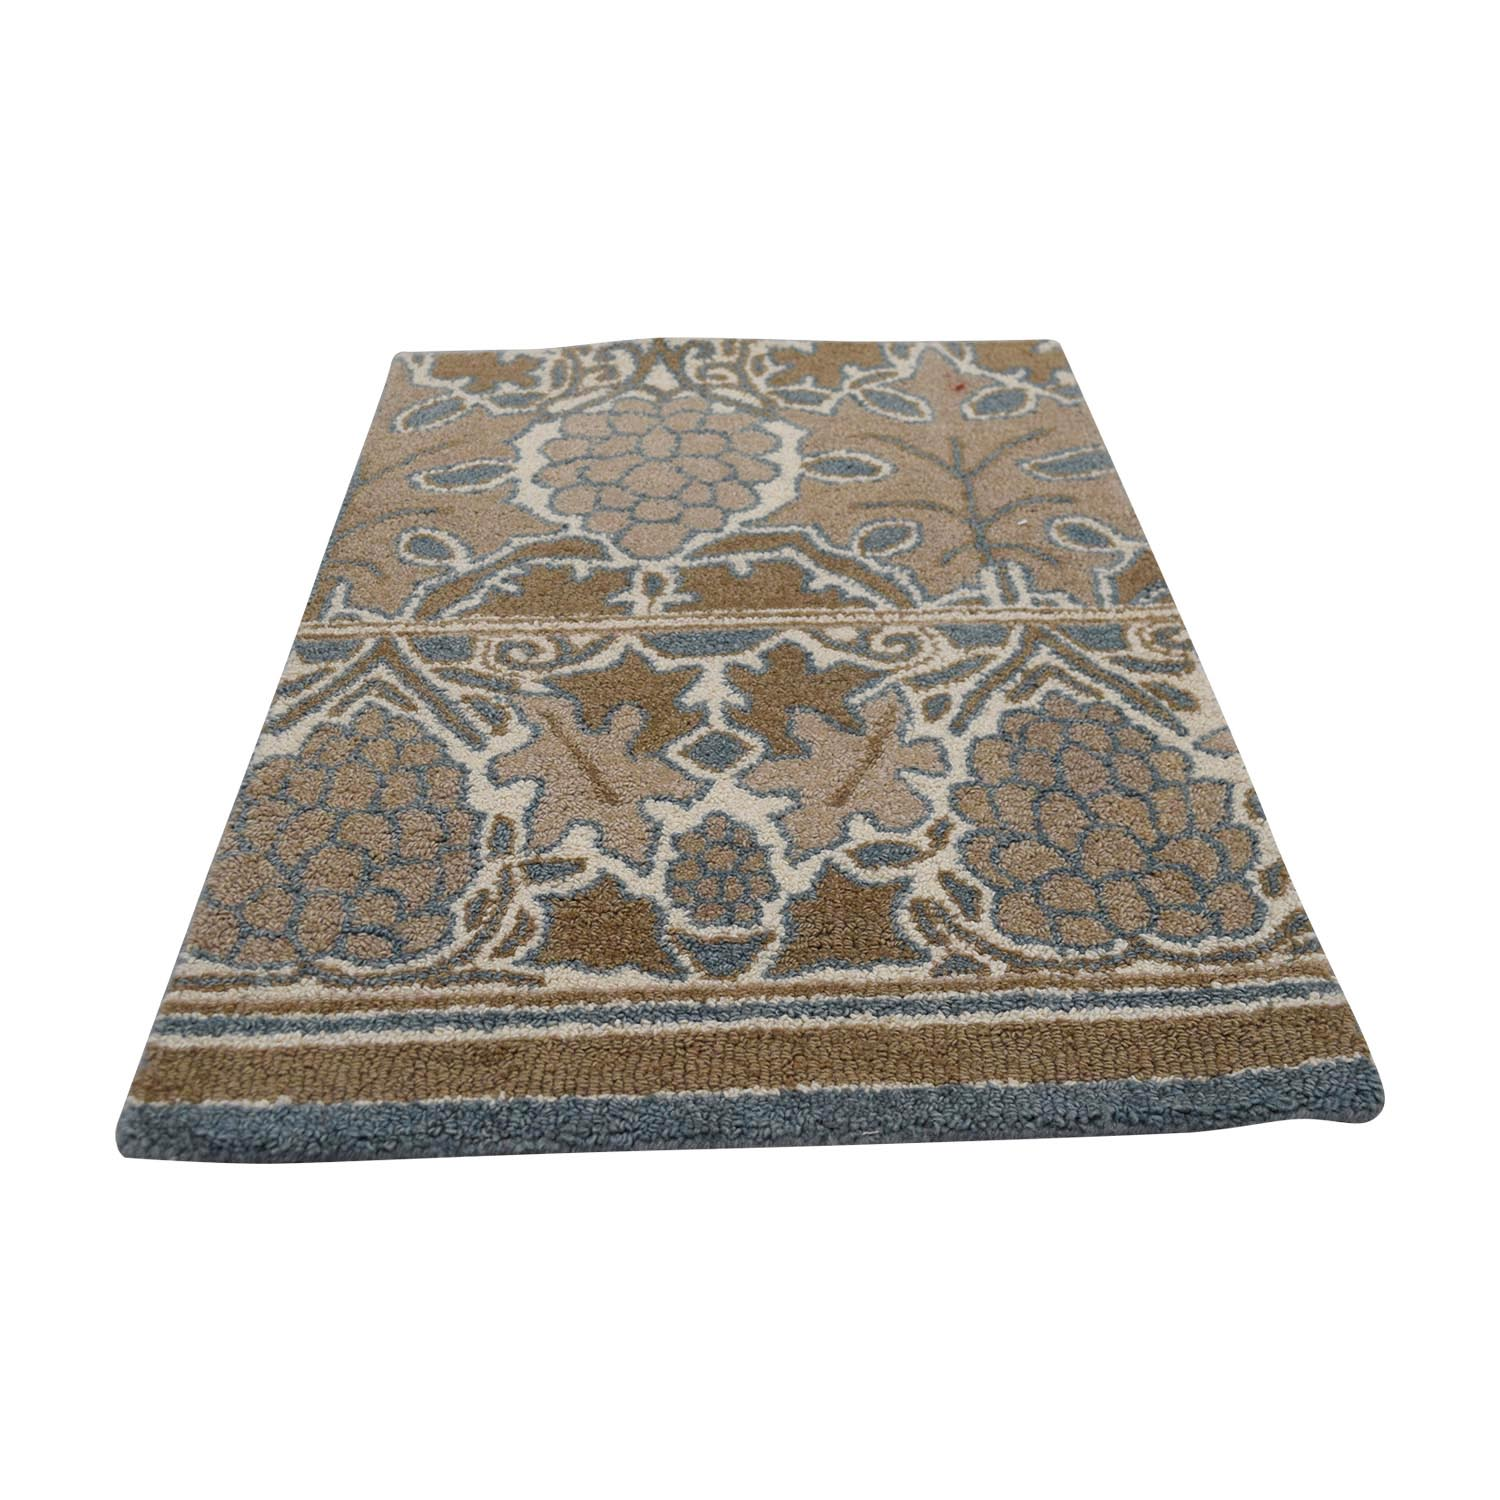 shop Obeetee Tan and Blue Wool Rug Obeetee